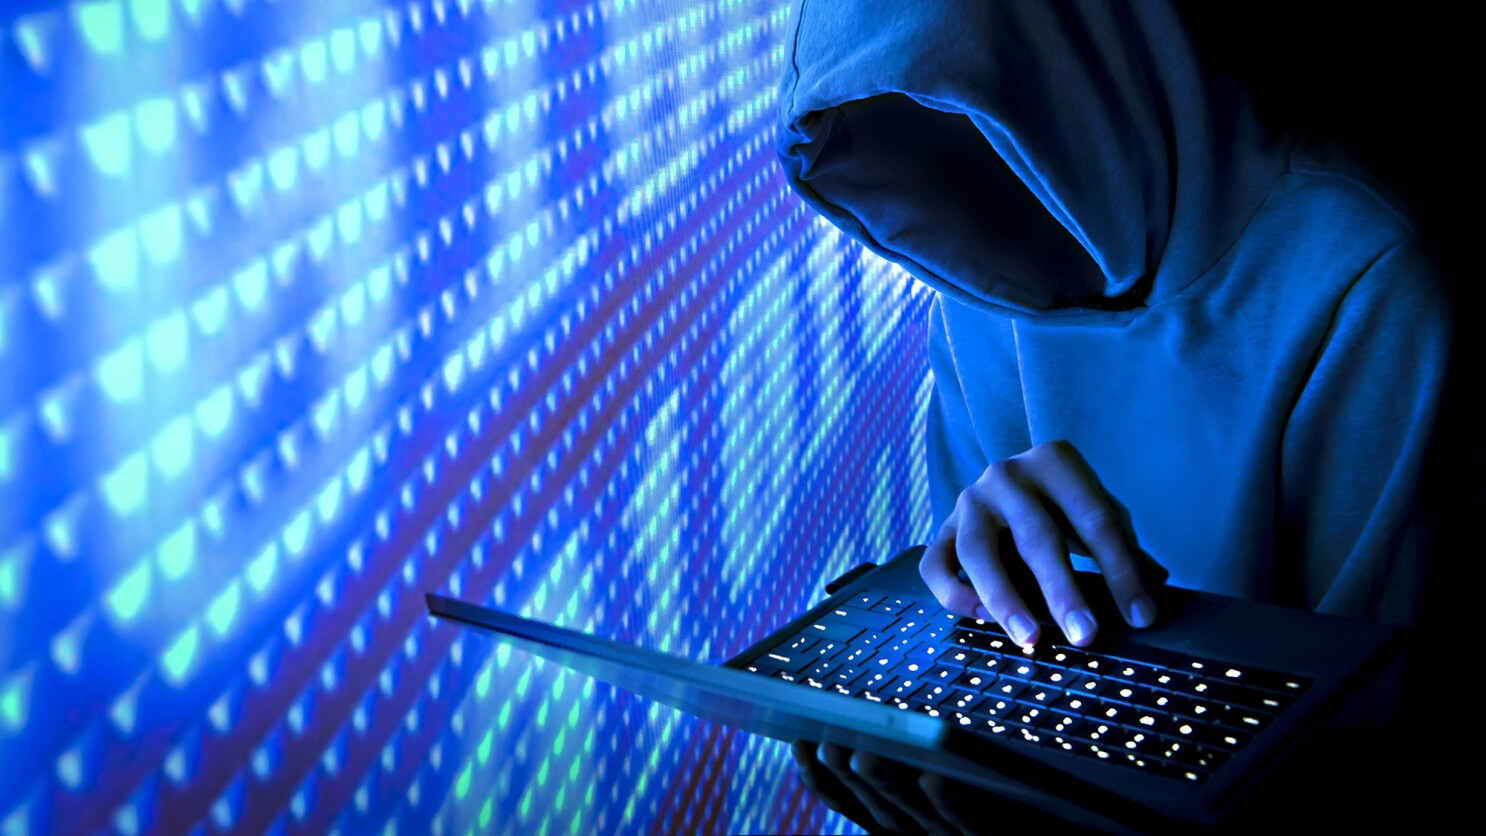 Data downer: Hackers will grow increasingly bold in 2017